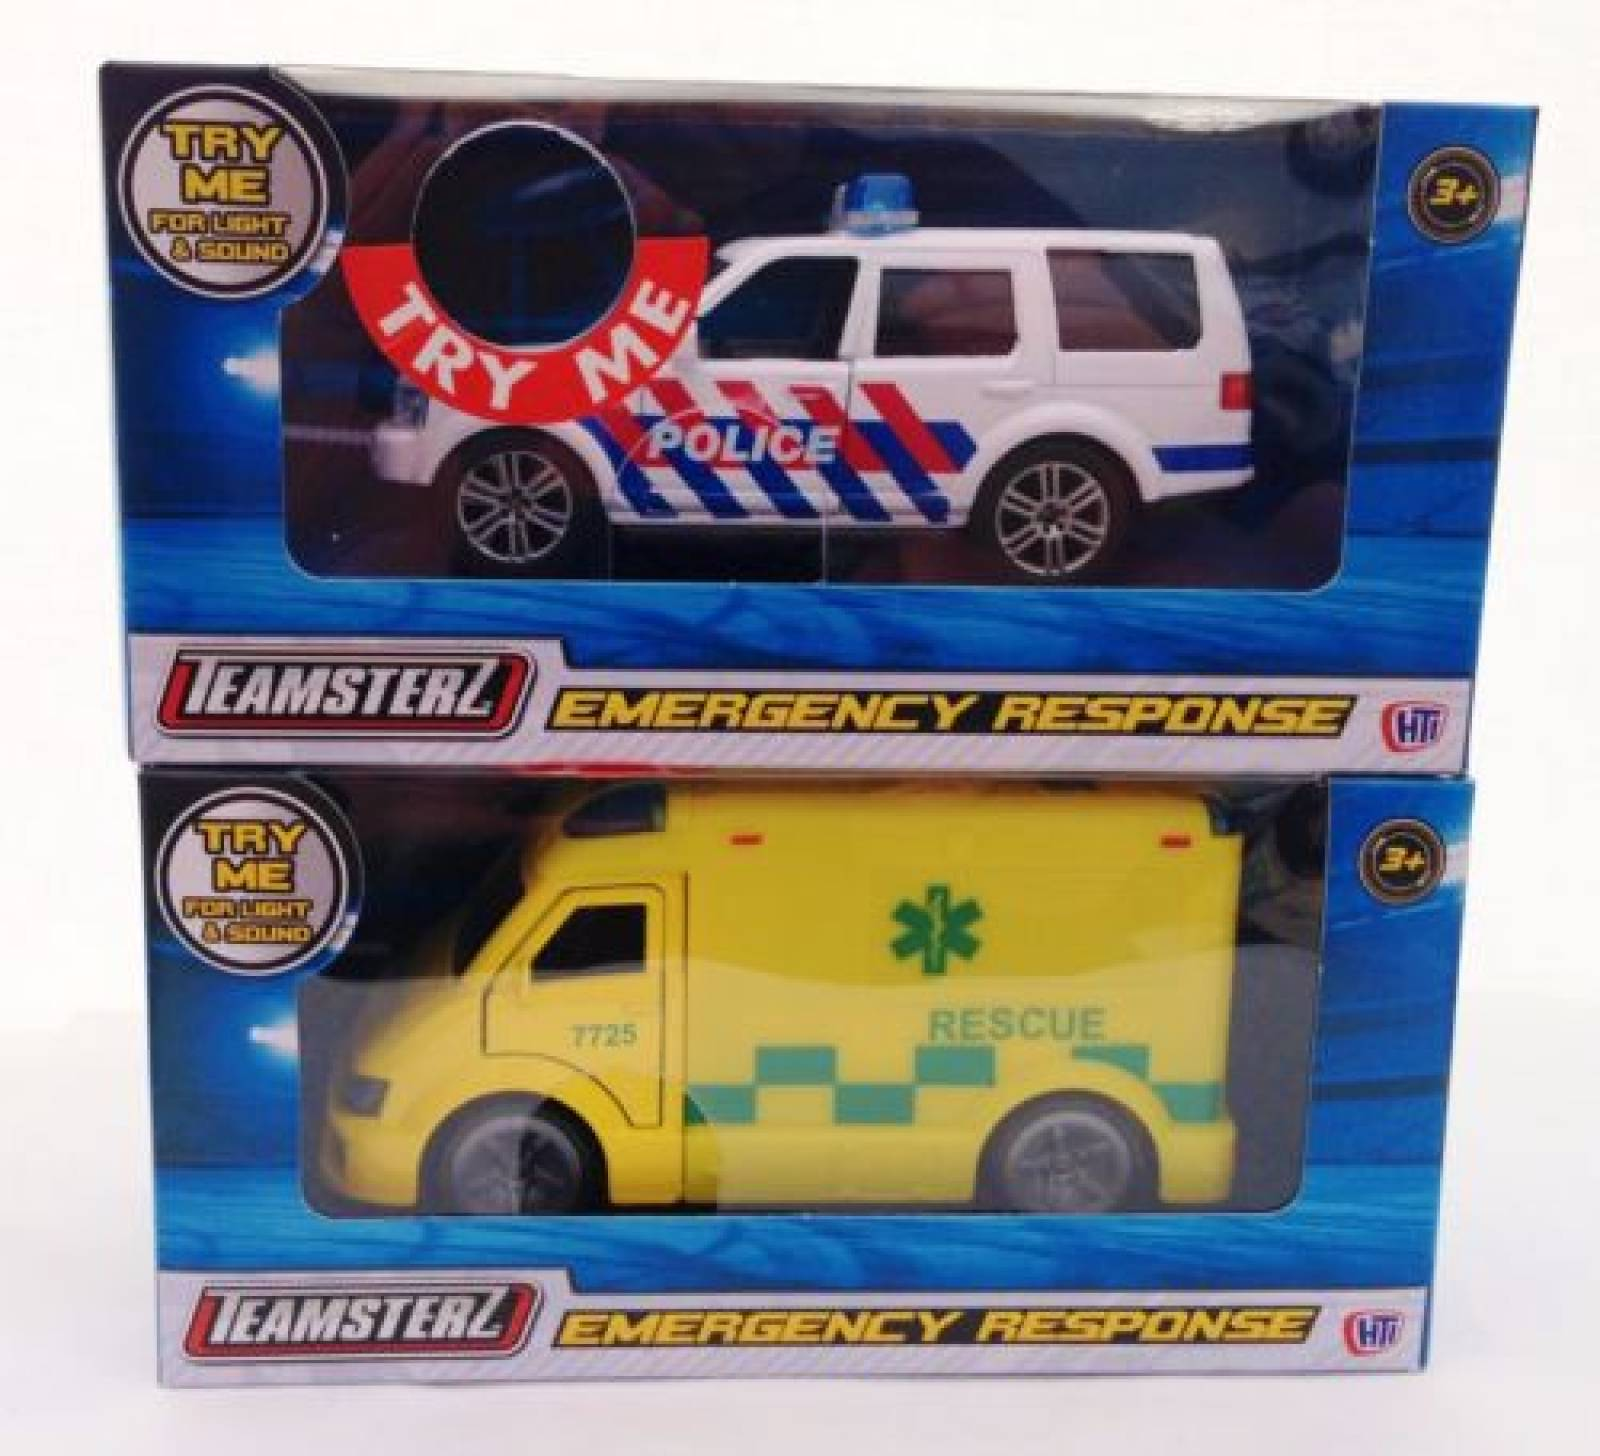 Teamsterz Emergency Response Police / Ambulance Die Cast Toy Car thumbnails